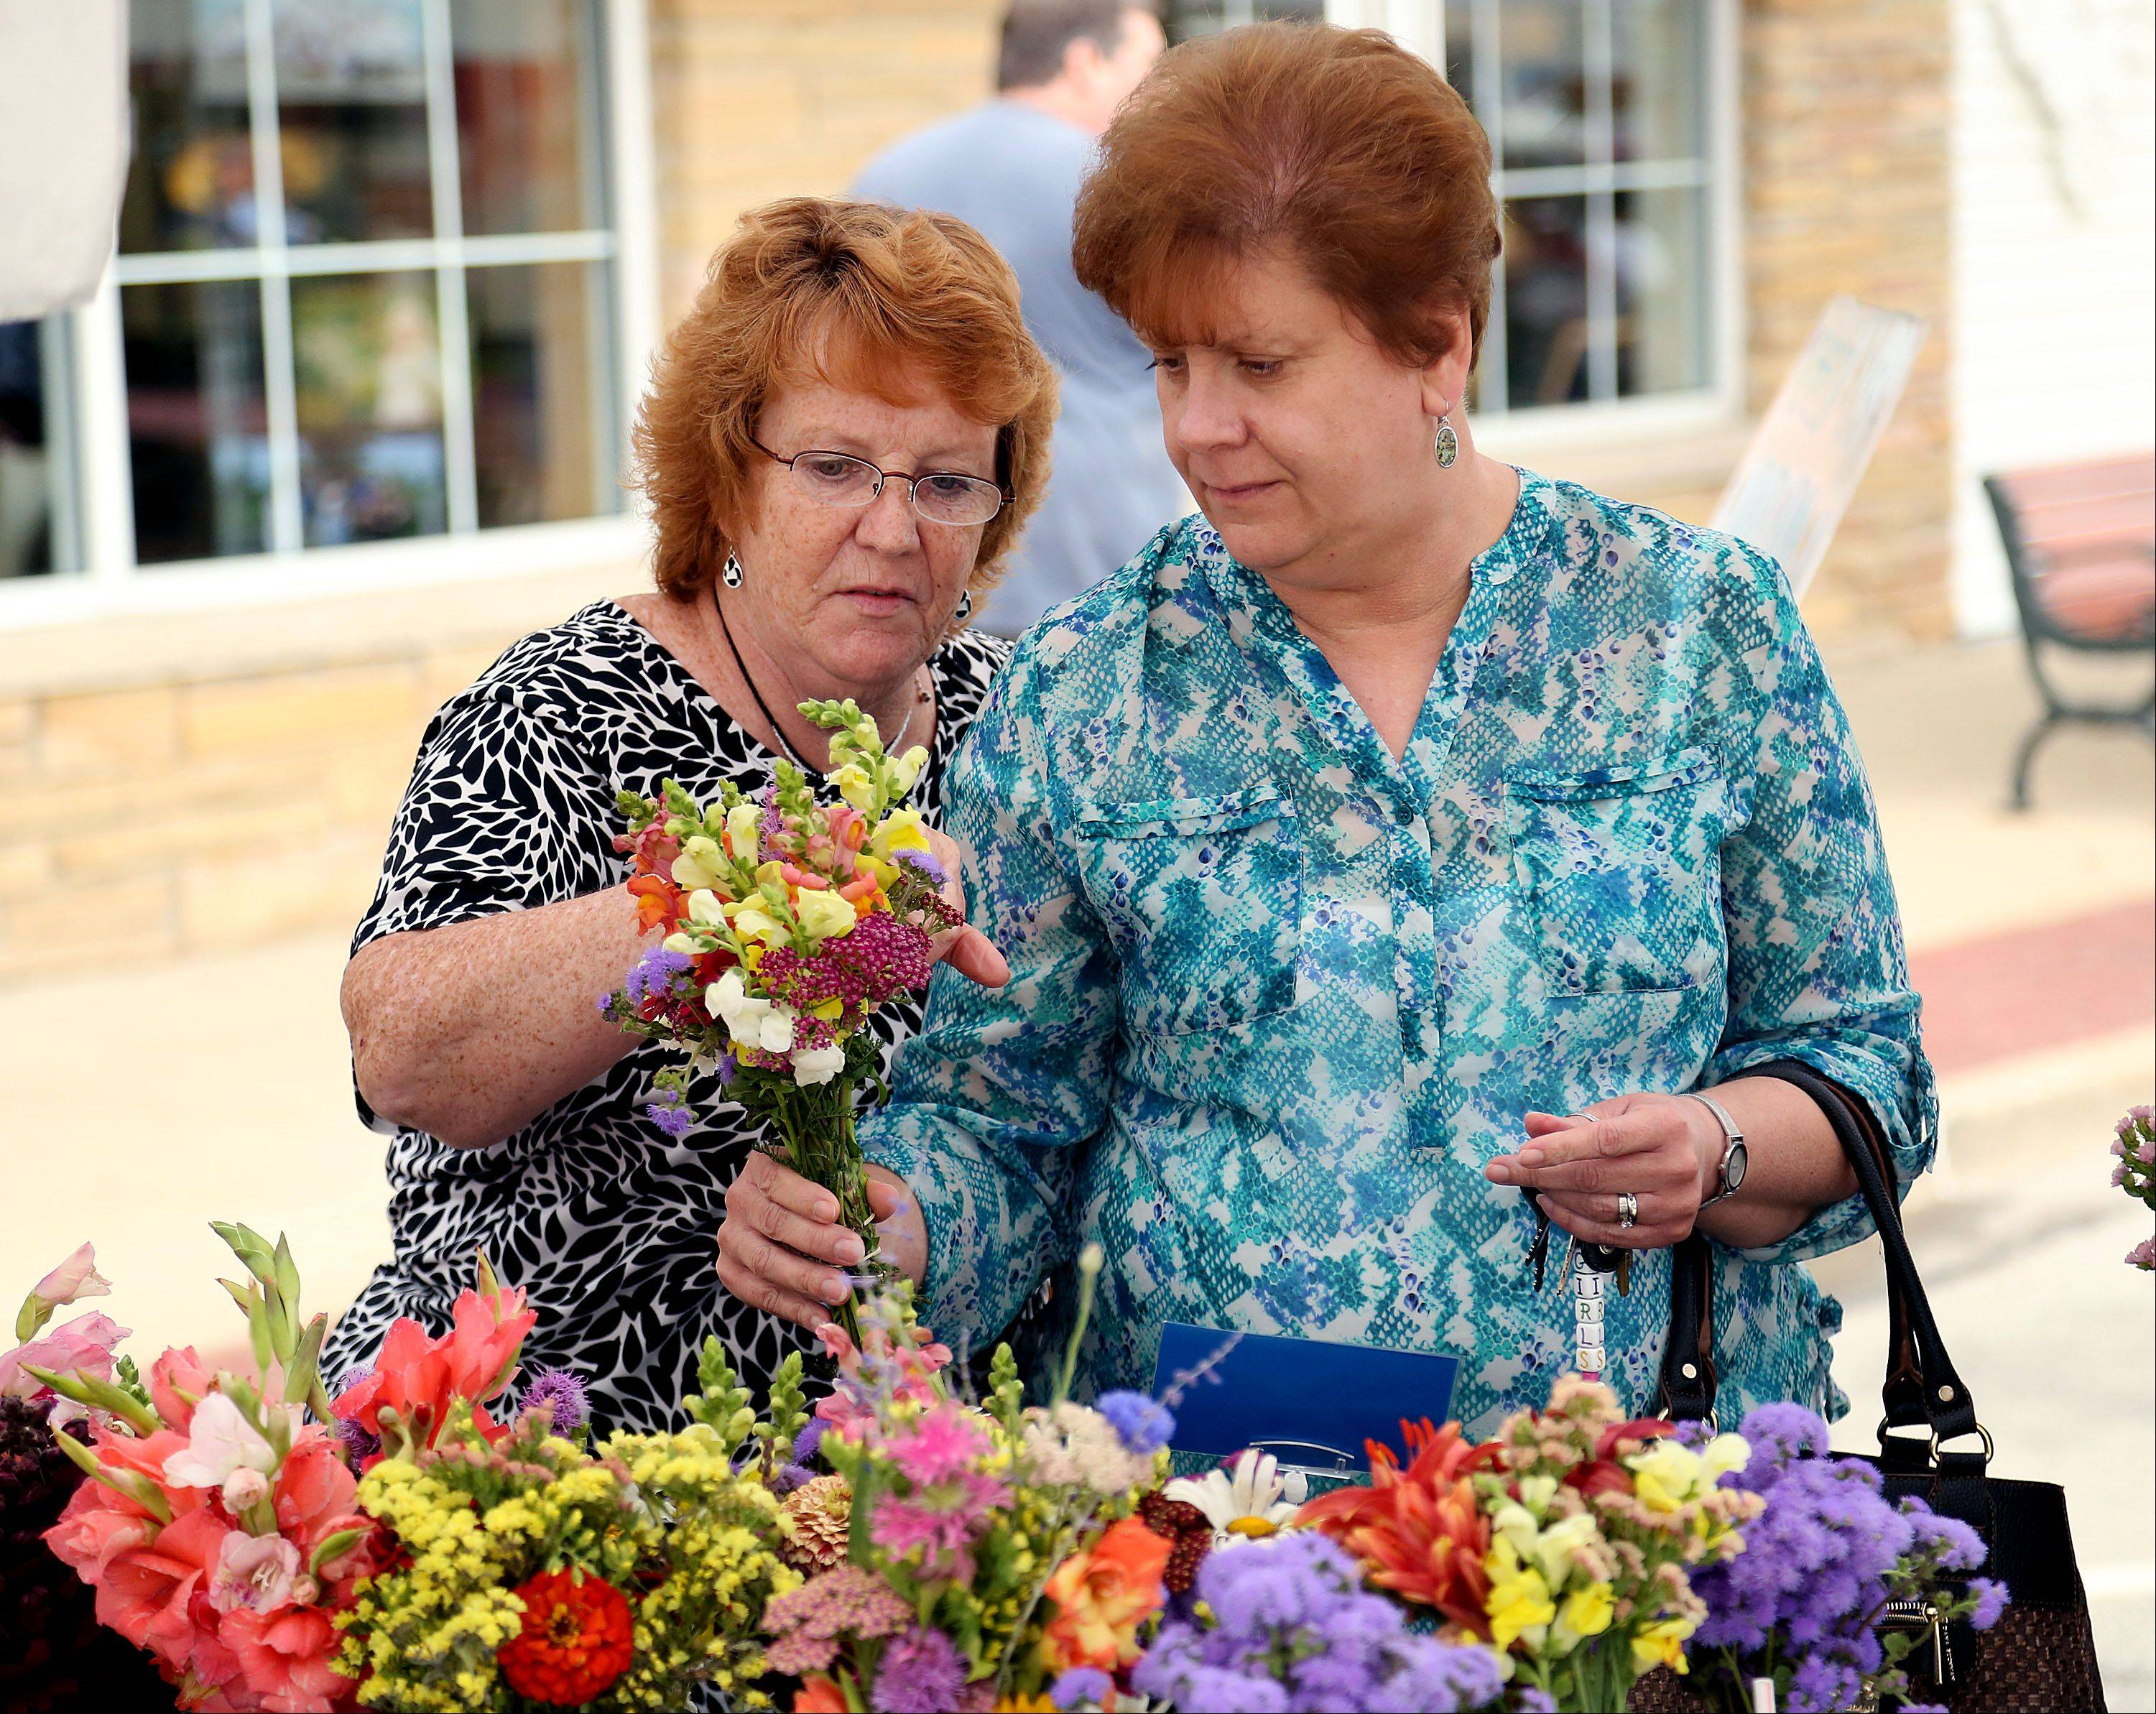 Karen Cook, left, and Emily Gardynski, both of Grayslake, look at flower bouquets during Grayslake's weekly farmers market along Center St. in downtown Grayslake Wednesday.